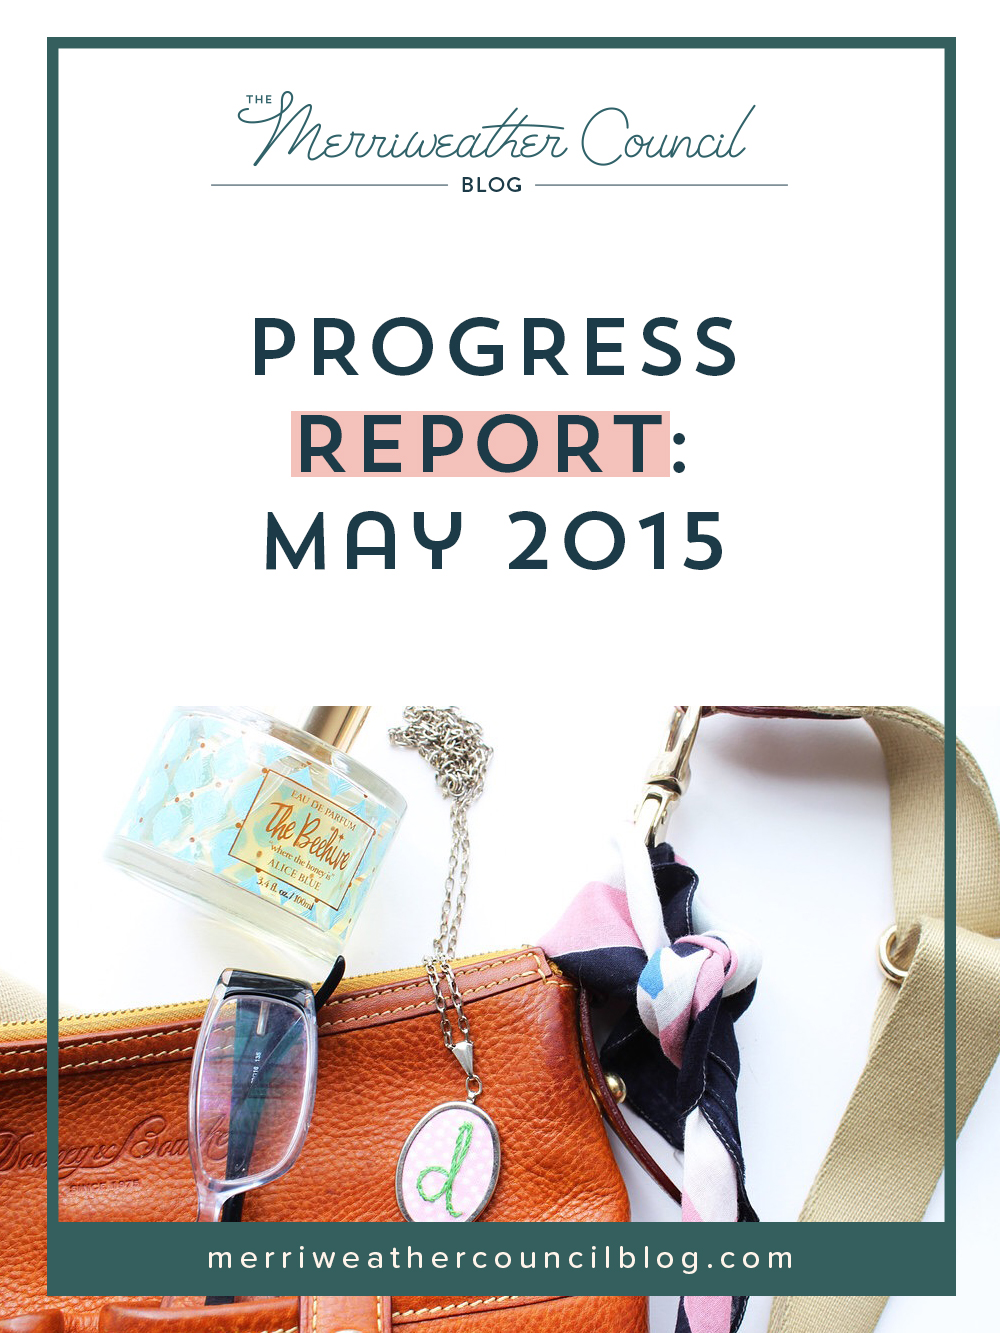 Progress report: may